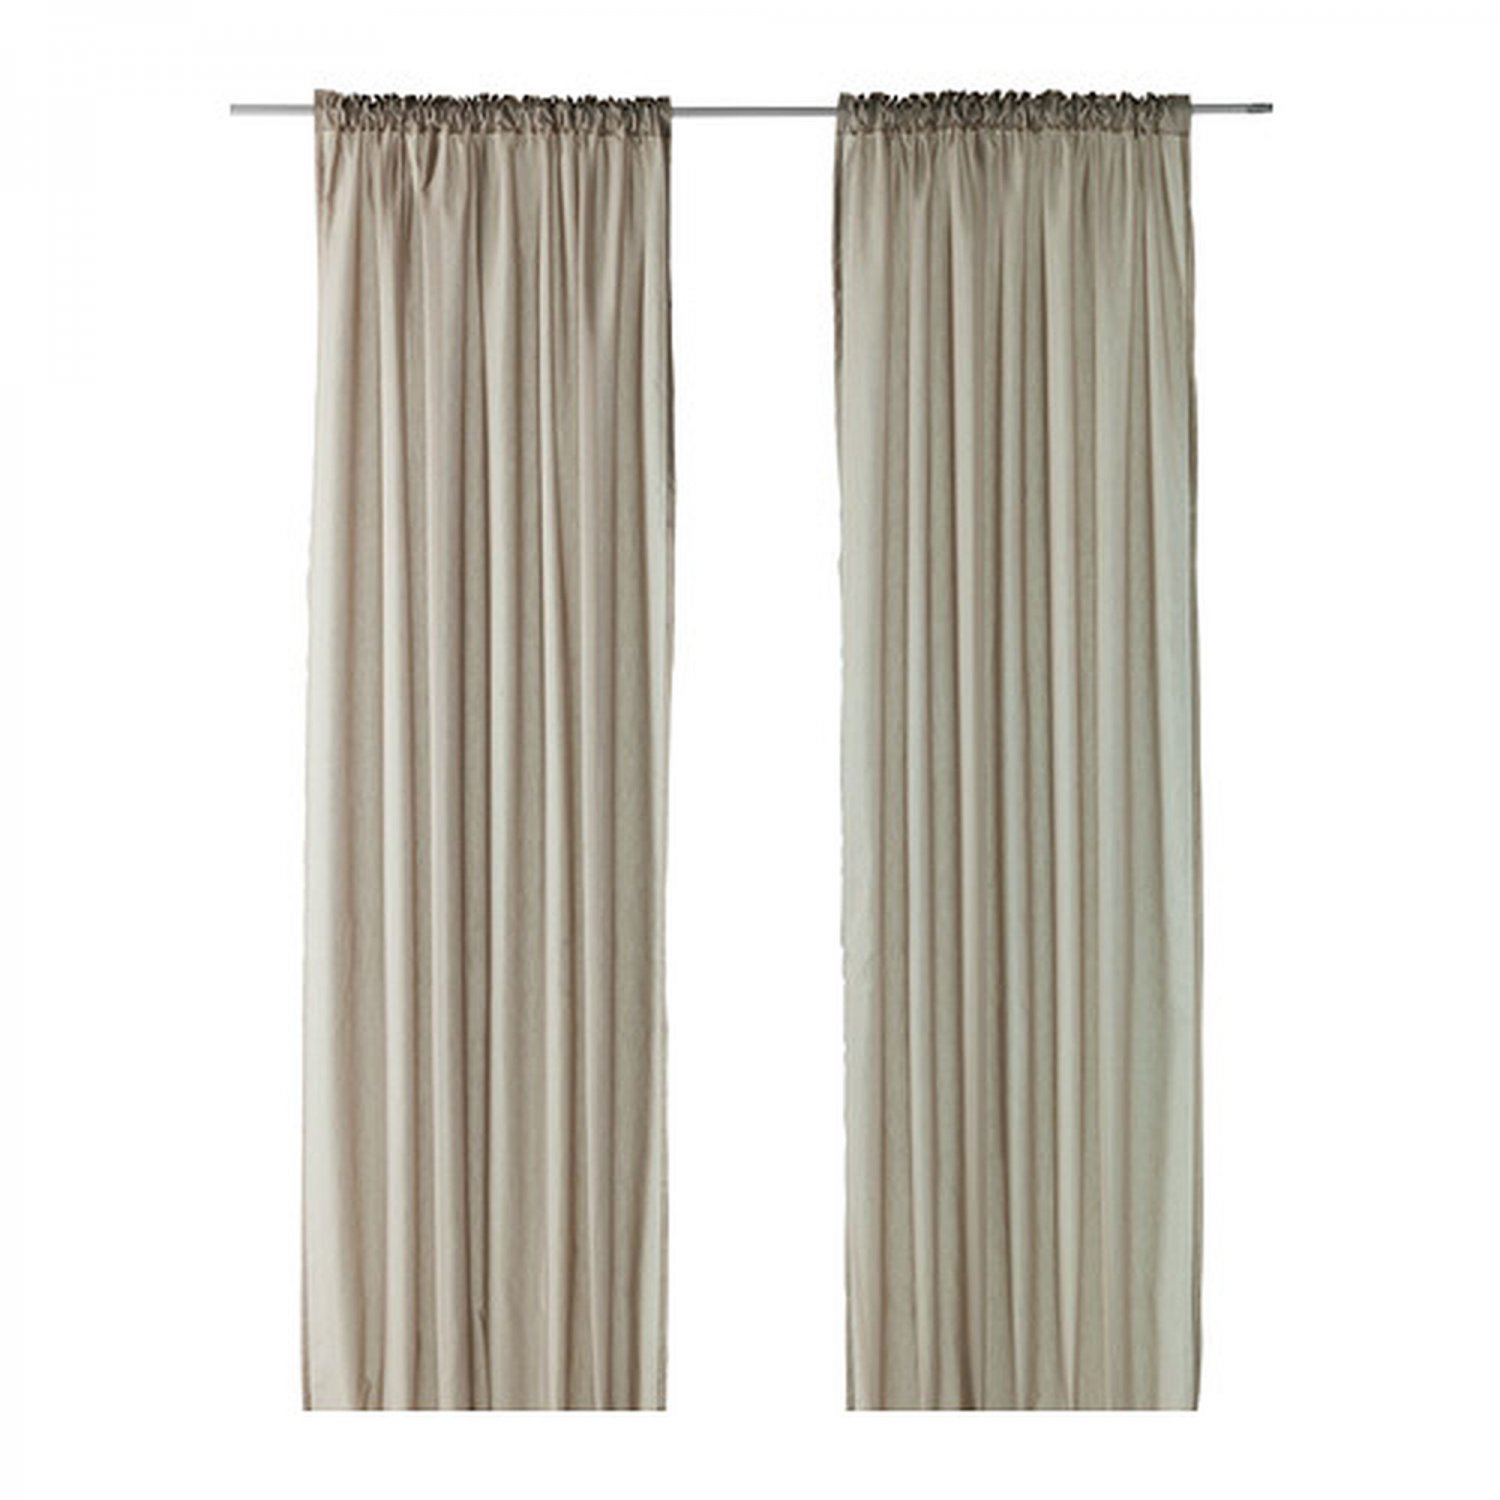 ikea vivan curtains drapes beige 2 panels mushroom taupe